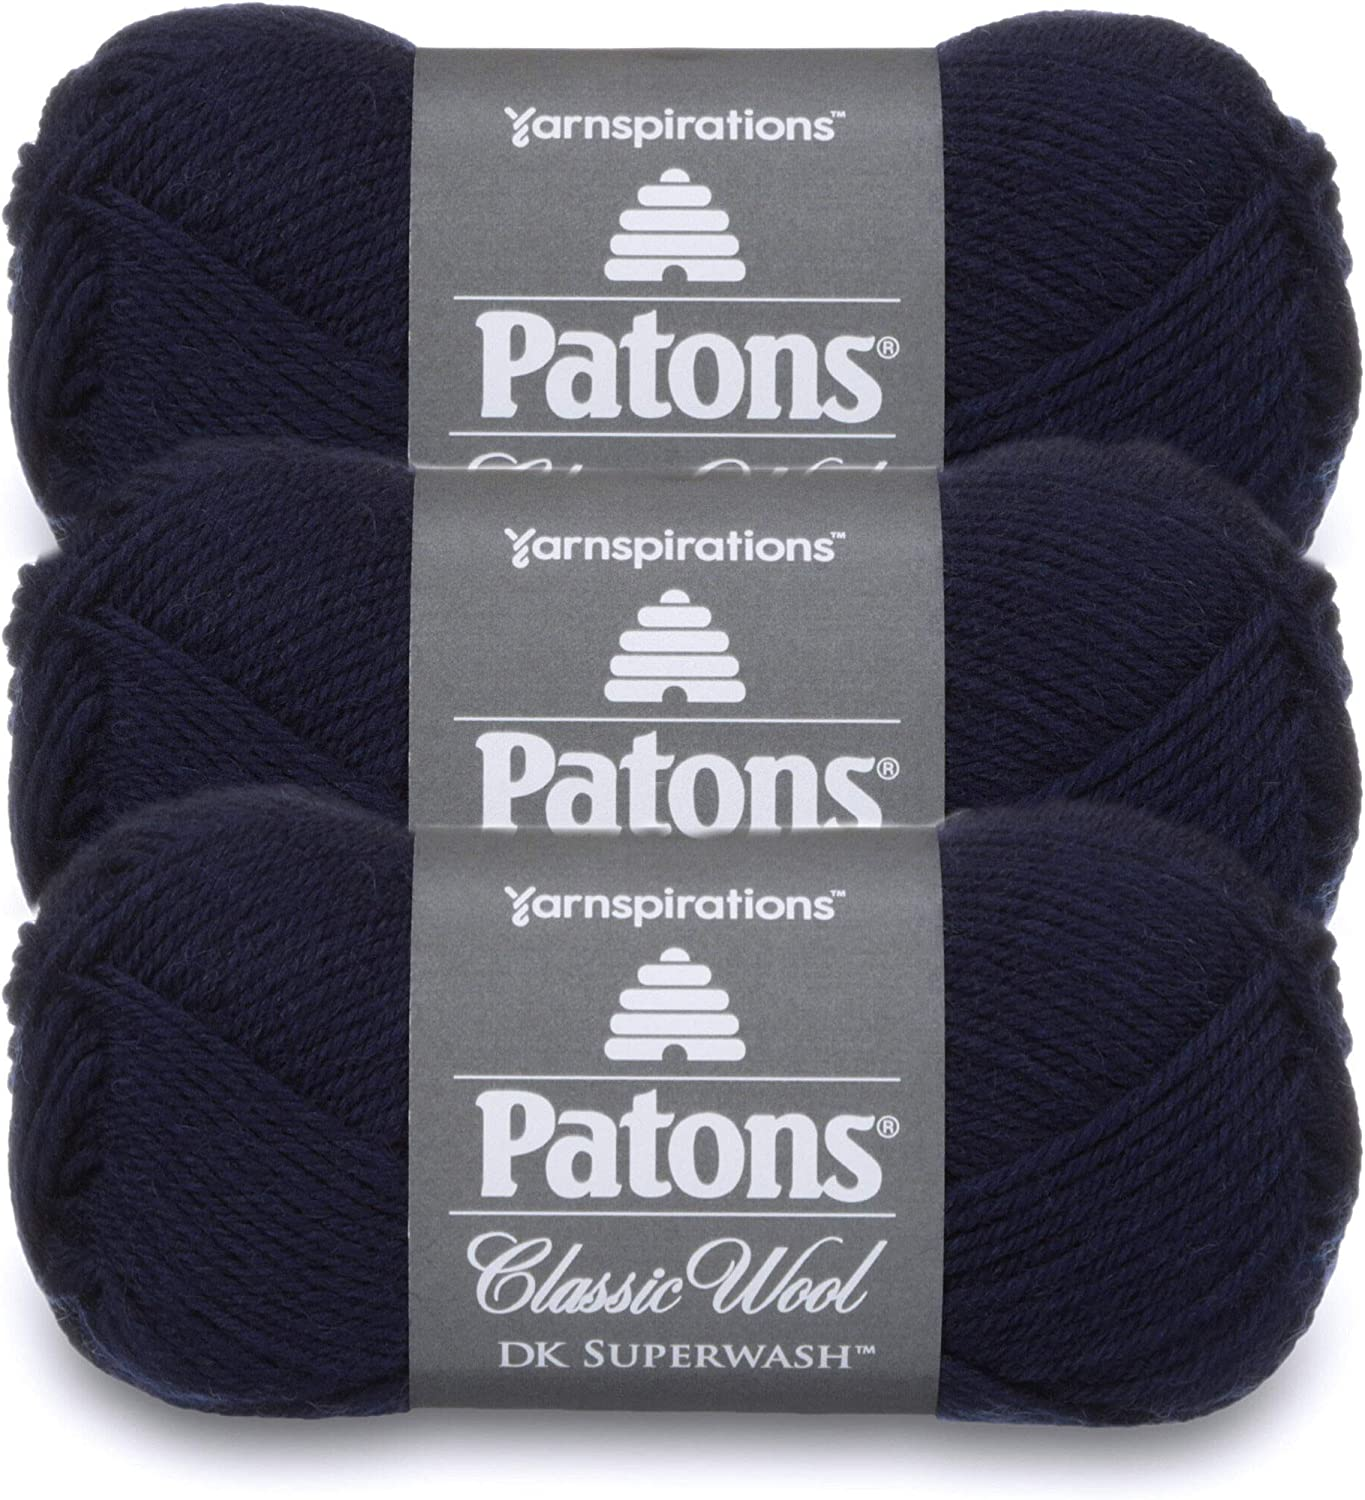 Patons Classic Wool DK Superwash Yarn - Gauge 3 Light - 100% Wool - (3-Pack) - Navy - for Crochet, Knitting, and Crafting